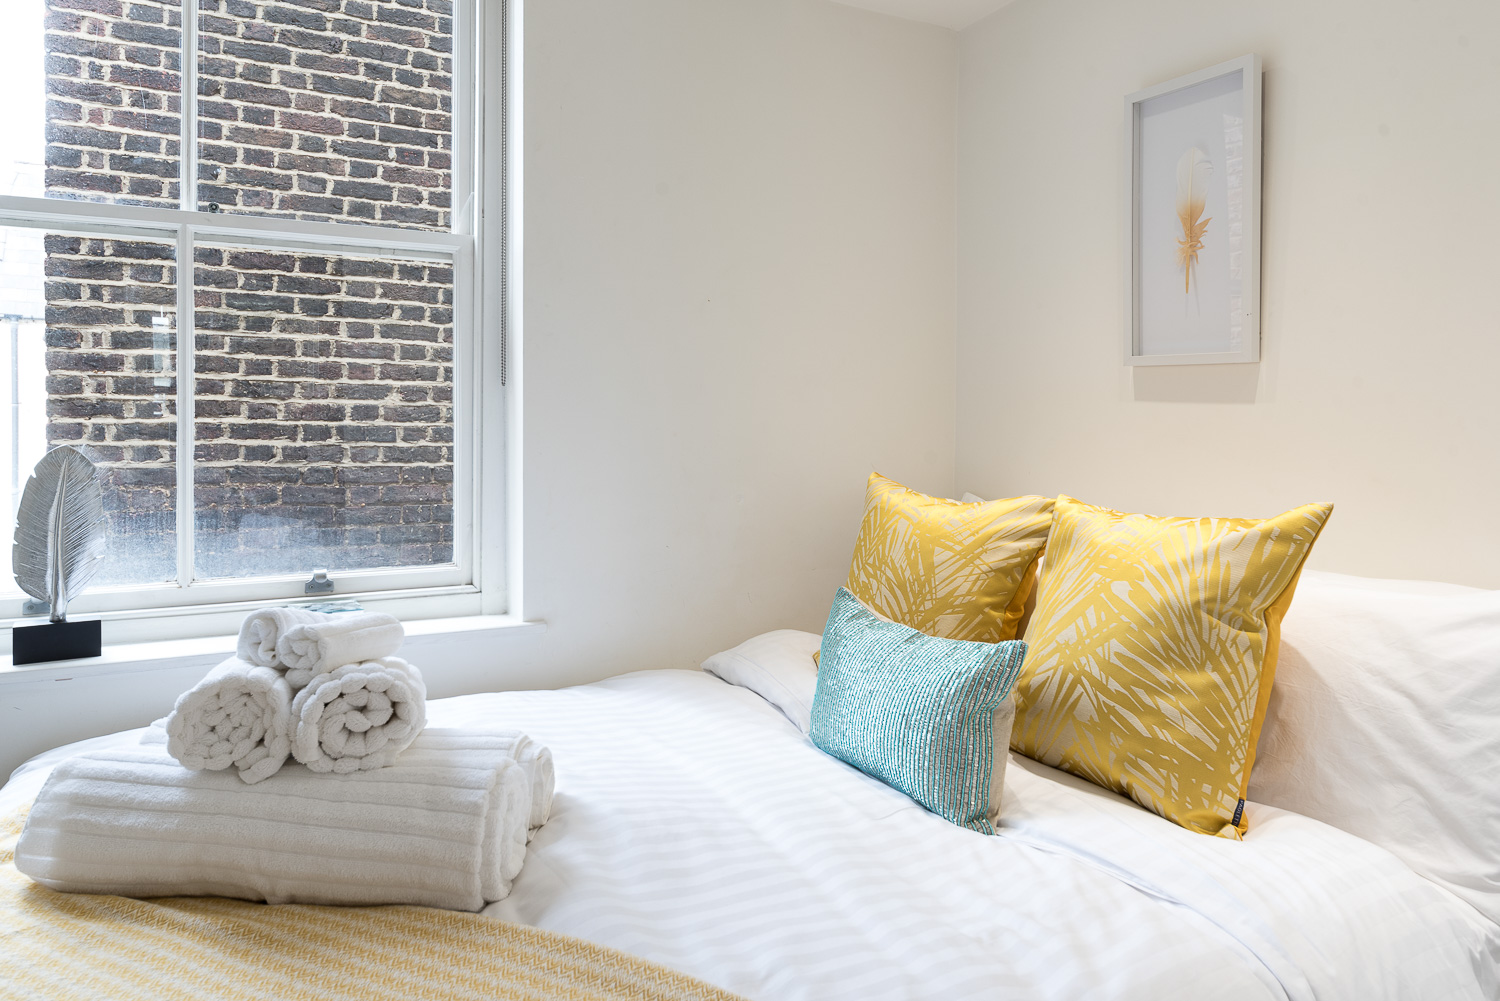 Lovelydays luxury service apartment rental - London - Fitzrovia - Foley Street II - Lovelysuite - 2 bedrooms - 2 bathrooms - Double bed - 8b67f3a9862c - Lovelydays